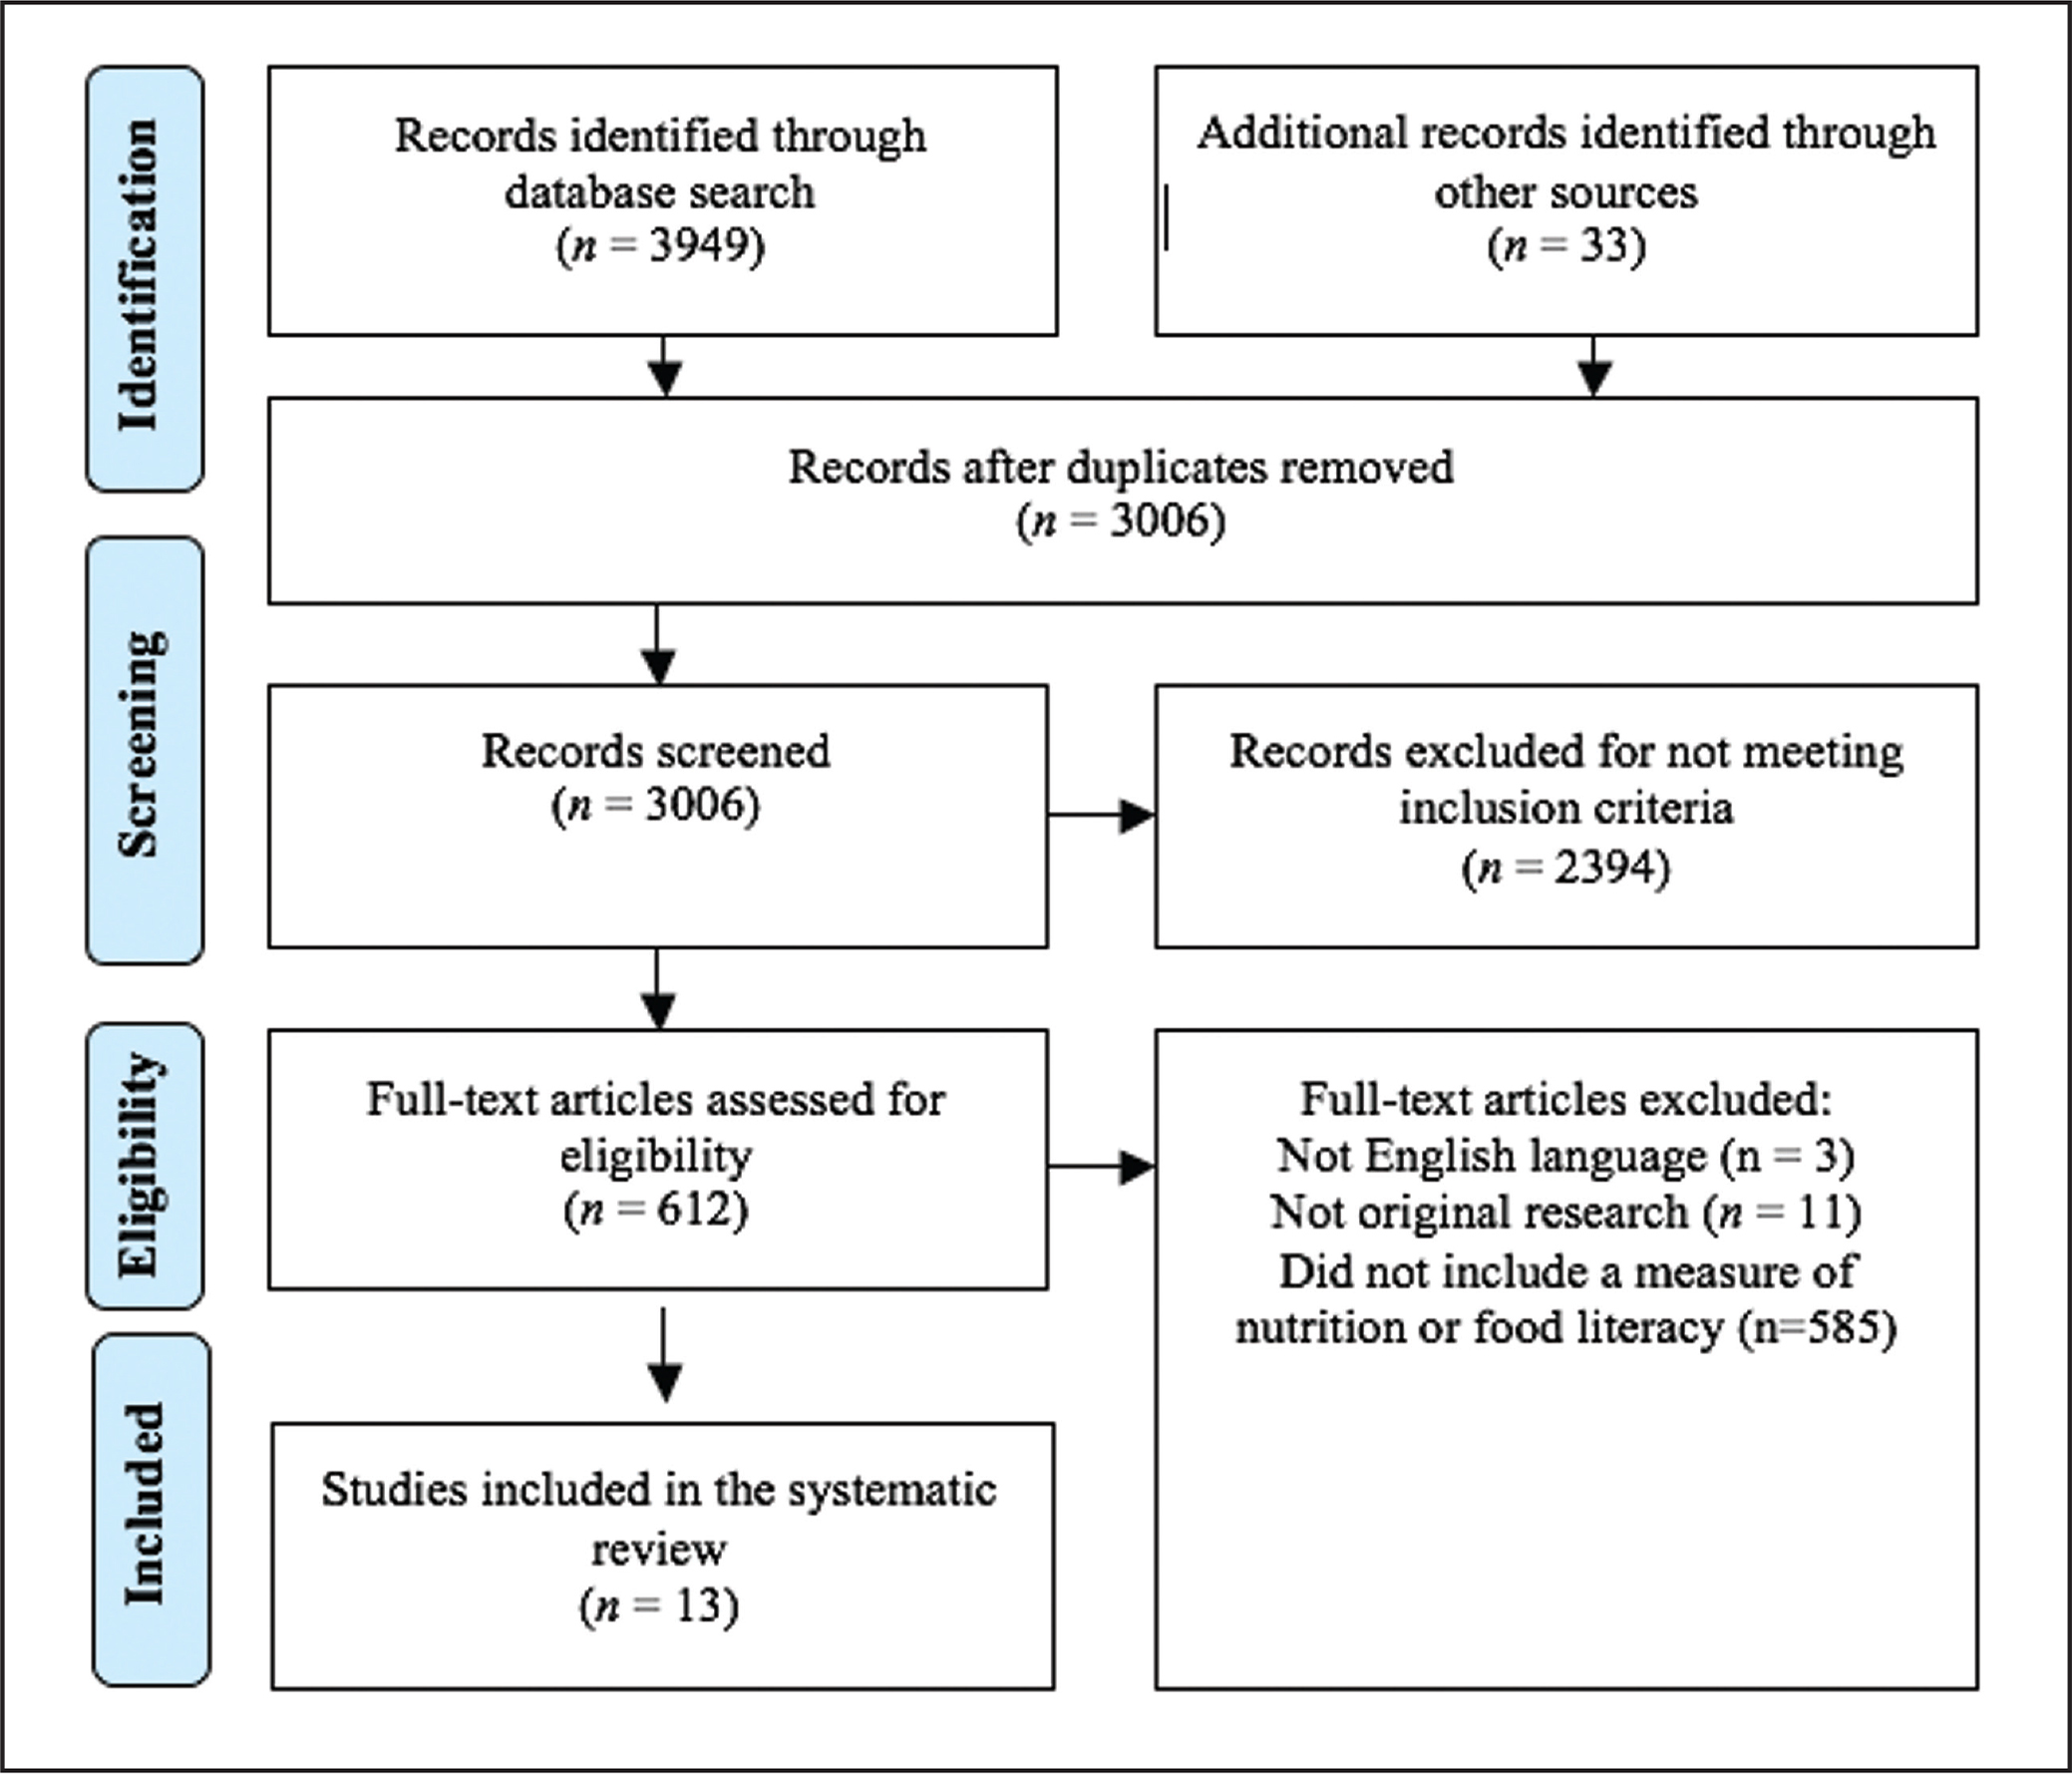 PRISMA (Preferred Reporting Items for Systematic Reviews and Meta-Analyses) flow chart showing results of systematic review of nutrition literacy measures.